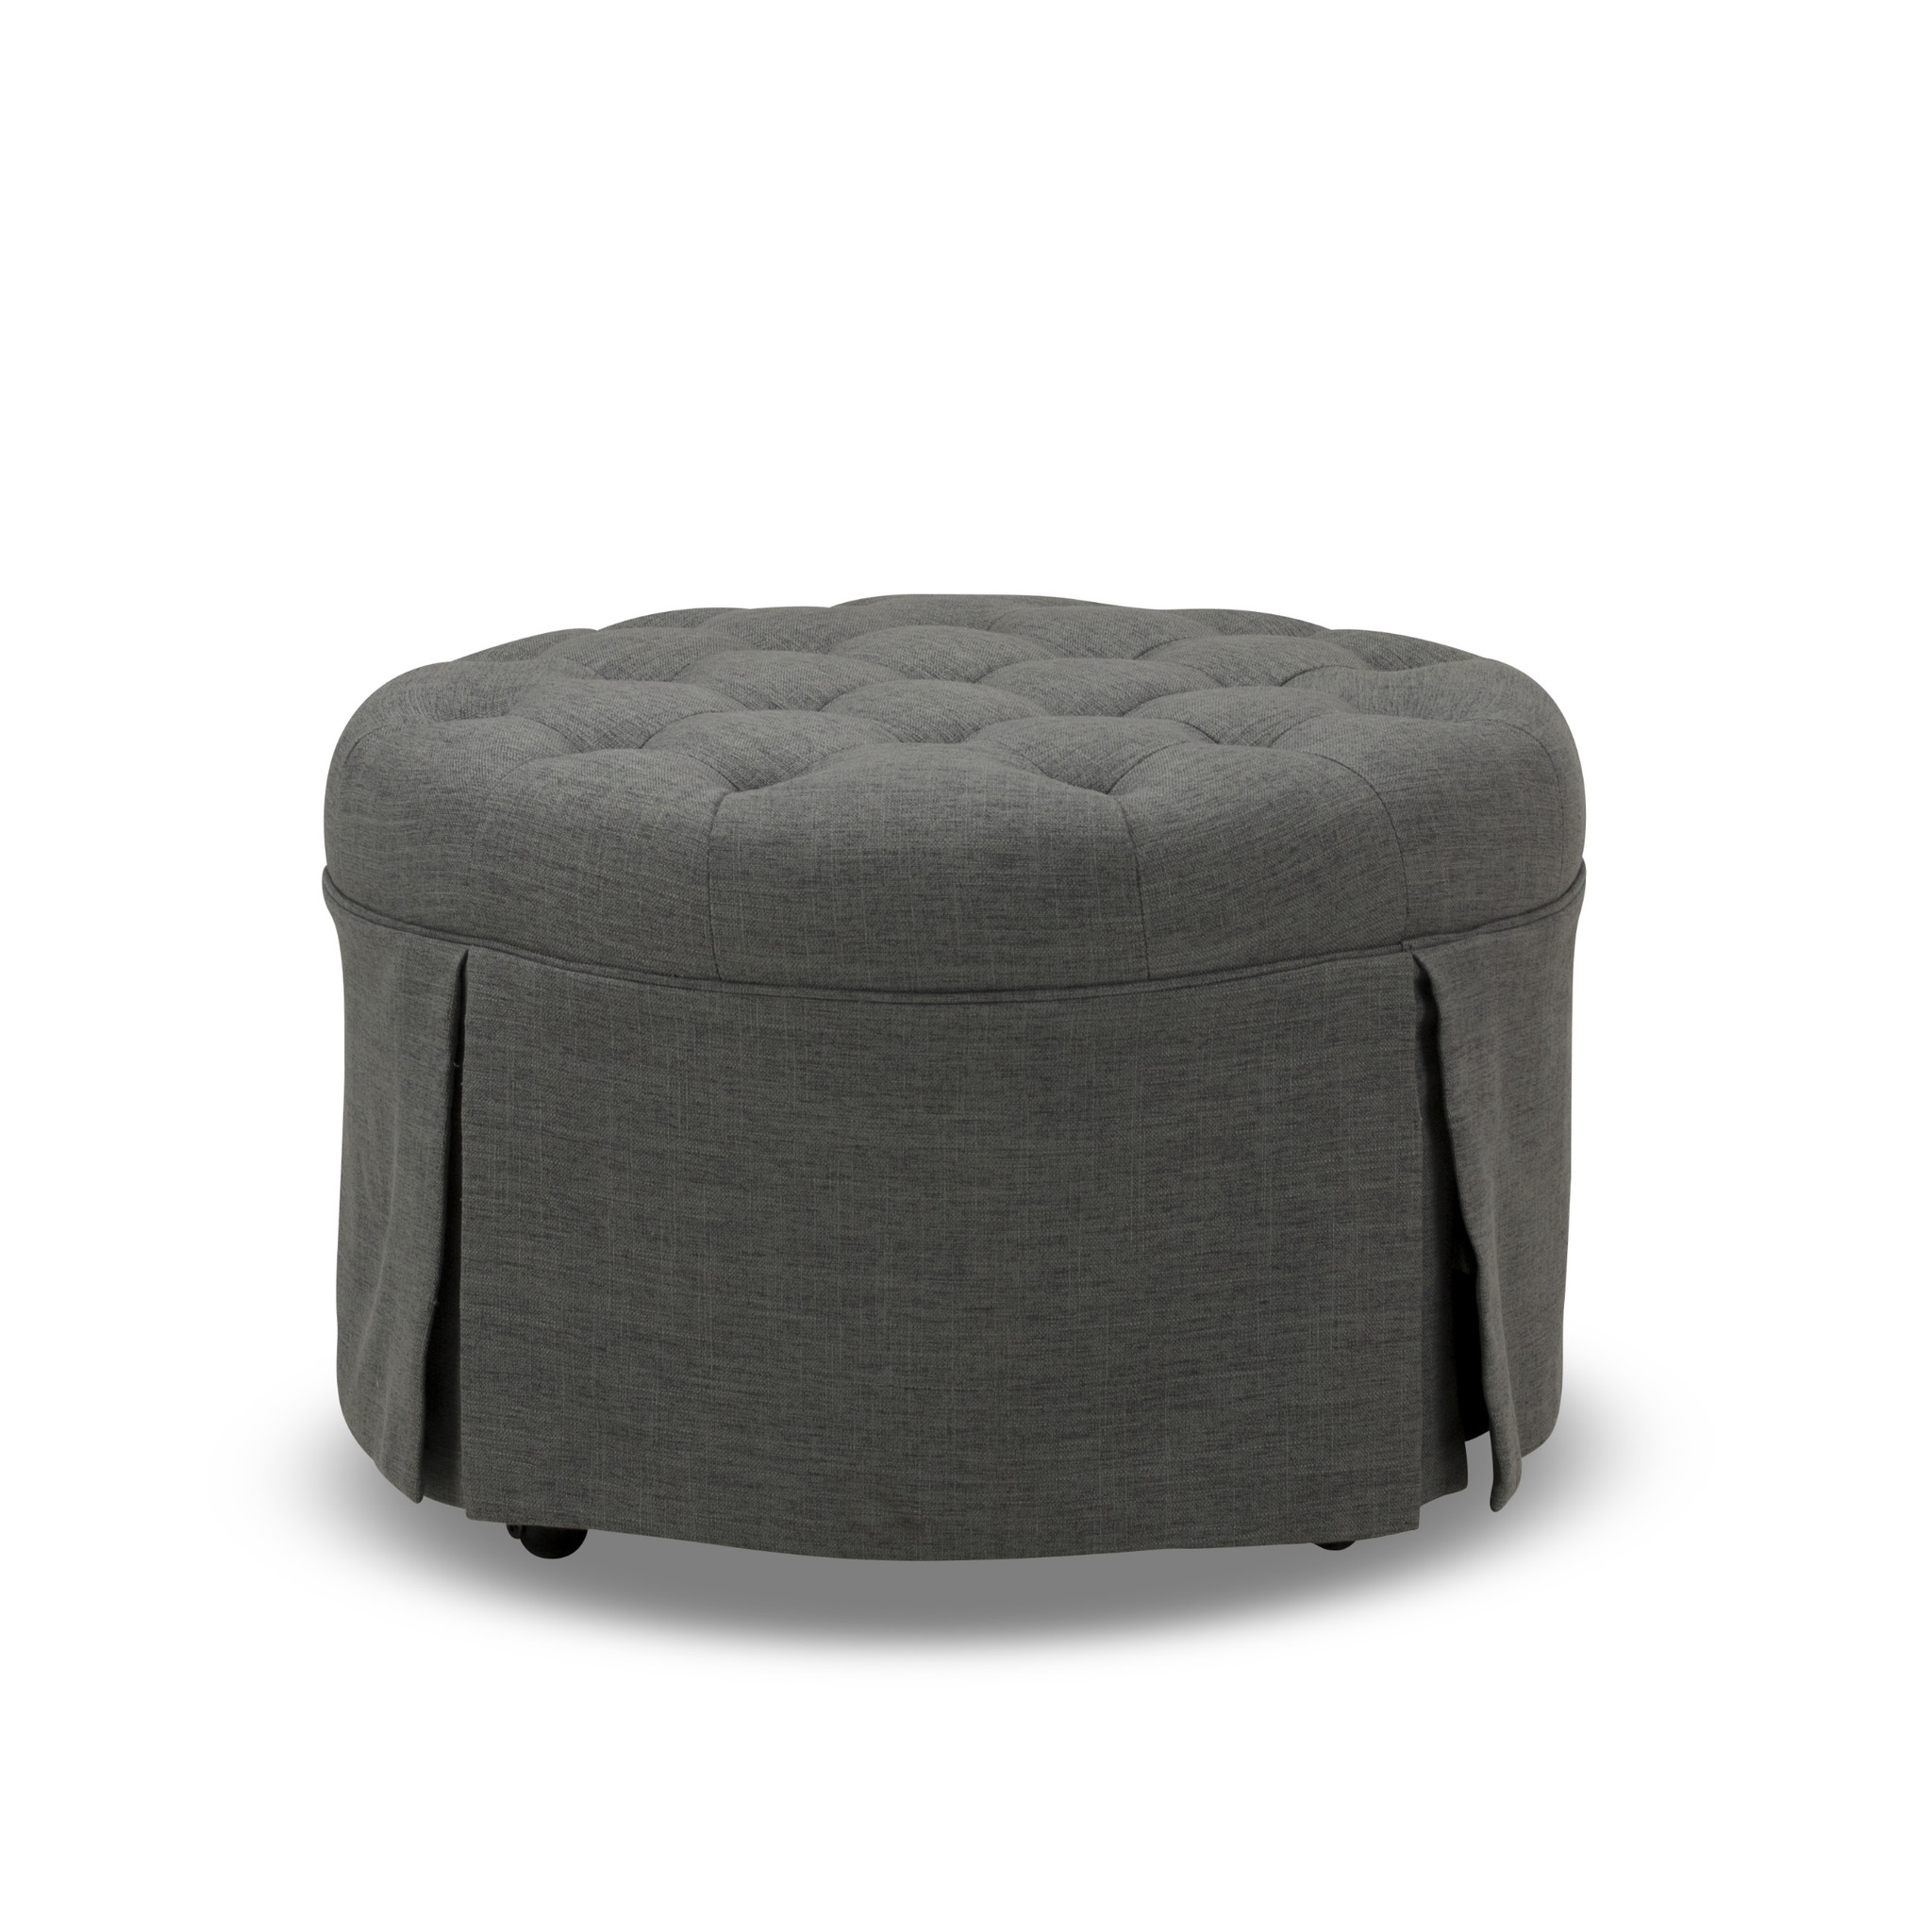 round-tufted-storage-ottoman-shadow